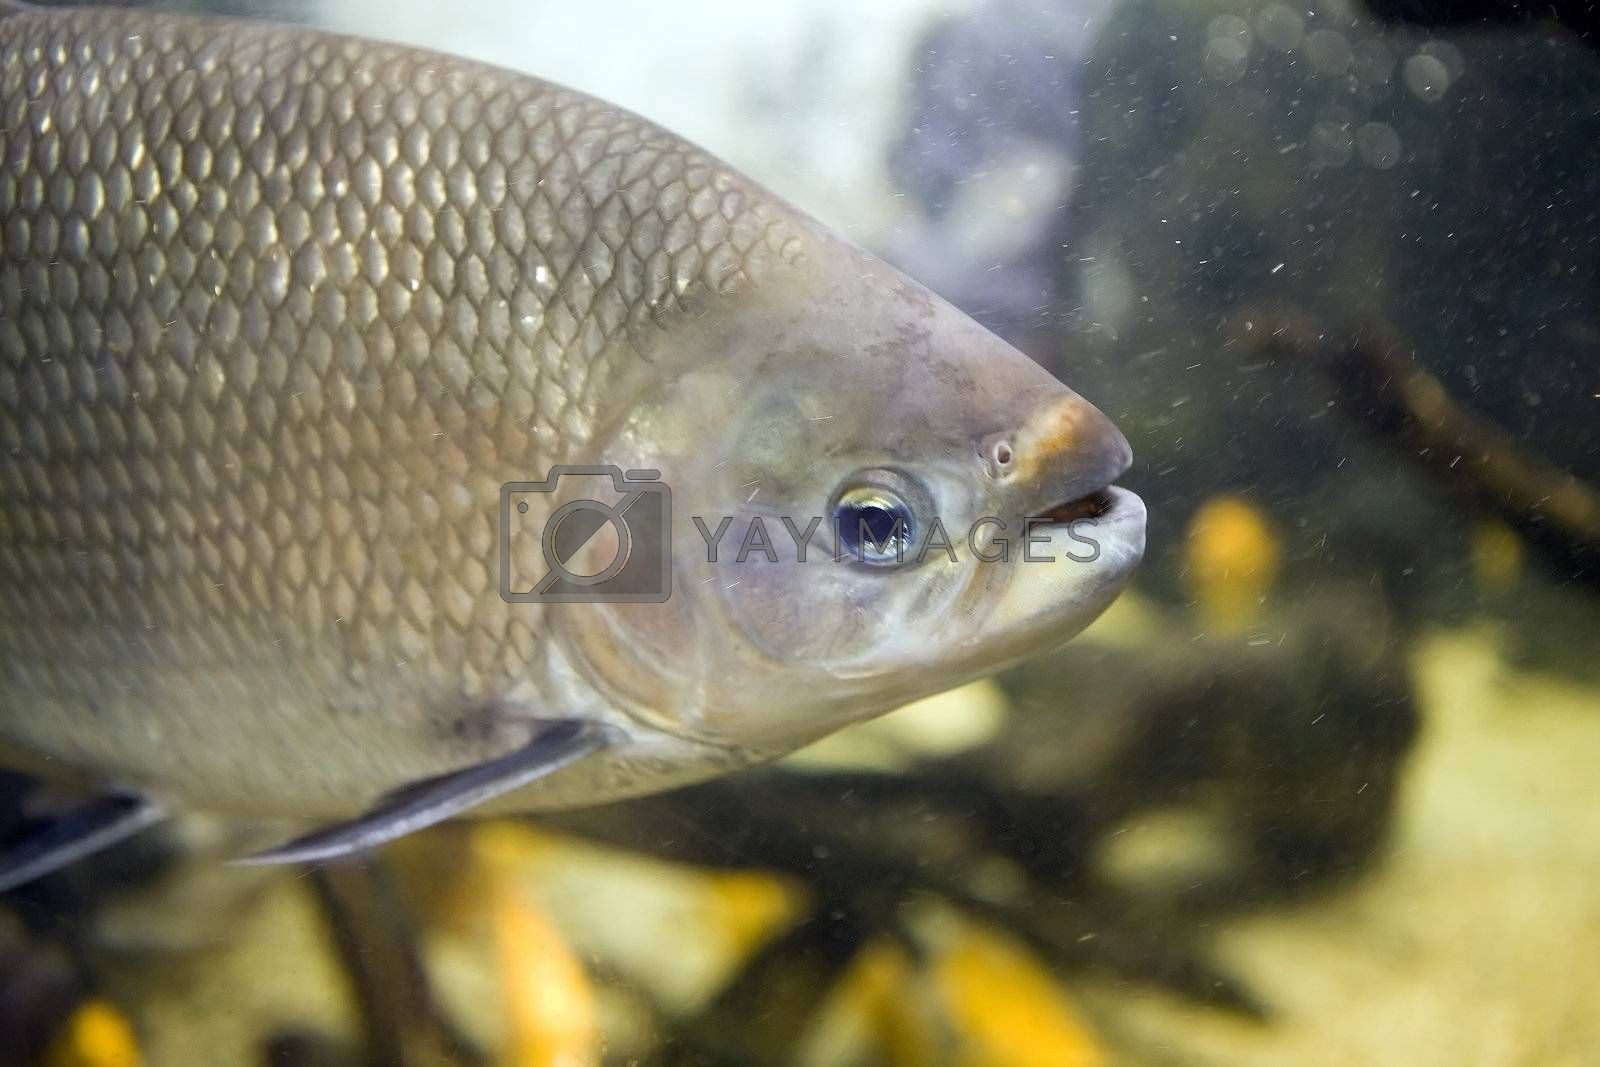 Close up of a freshwater Tambaquifish, Colossoma macropomum, showing silver scales, gills, eye, nostril and open mouth. The fish is swimming in an aquarium.